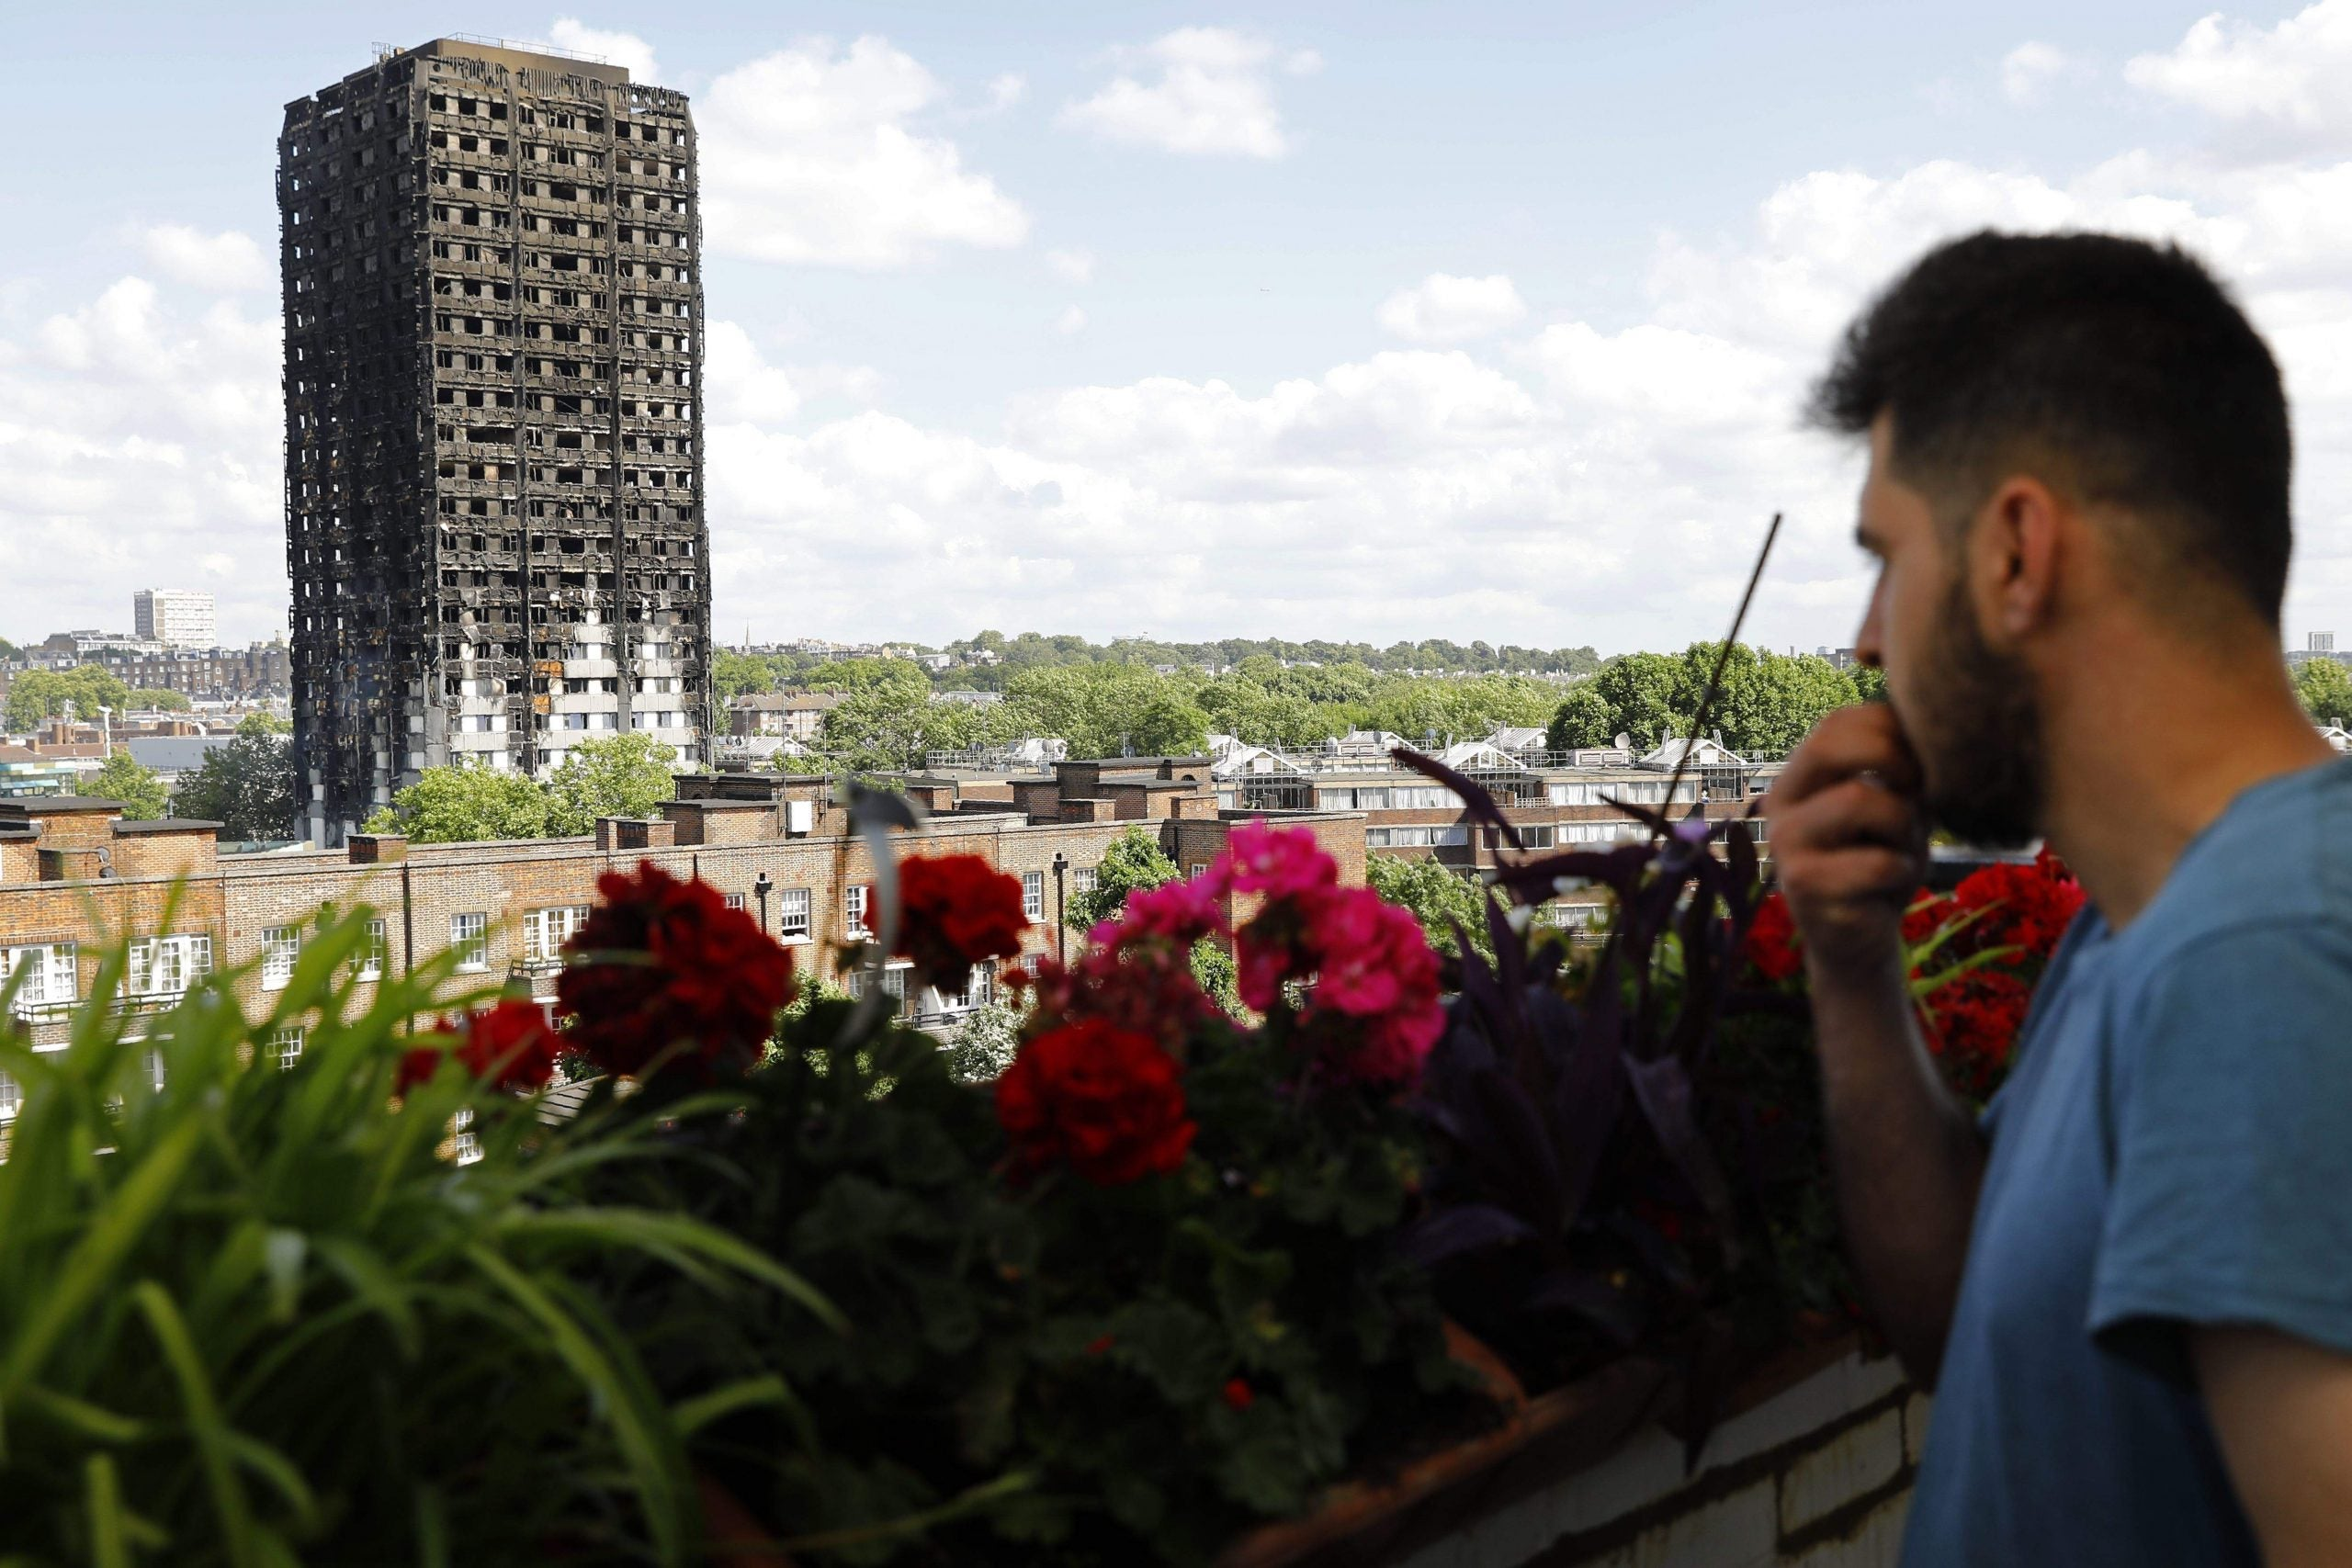 Grenfell Tower residents are angry and alone in a neighbourhood of absent millionaires